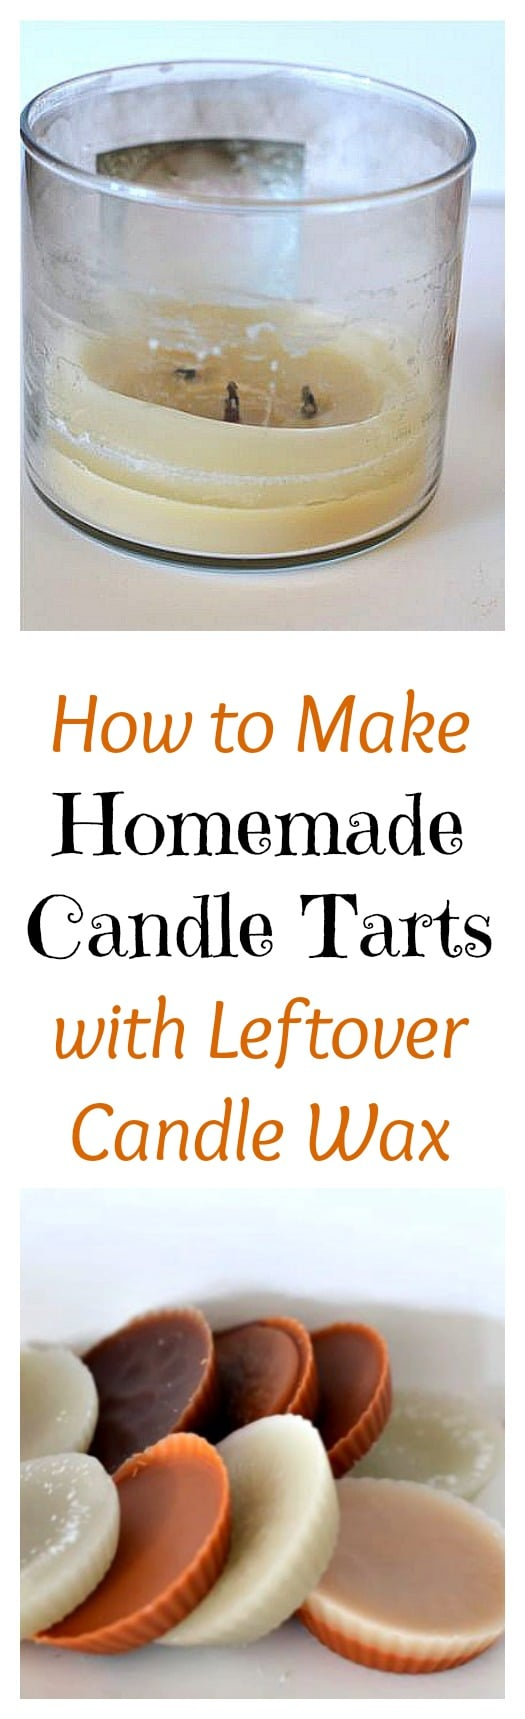 Save money with this easy upcycling trick! Learn How to Make Homemade Candle Tarts with Leftover Candle Wax